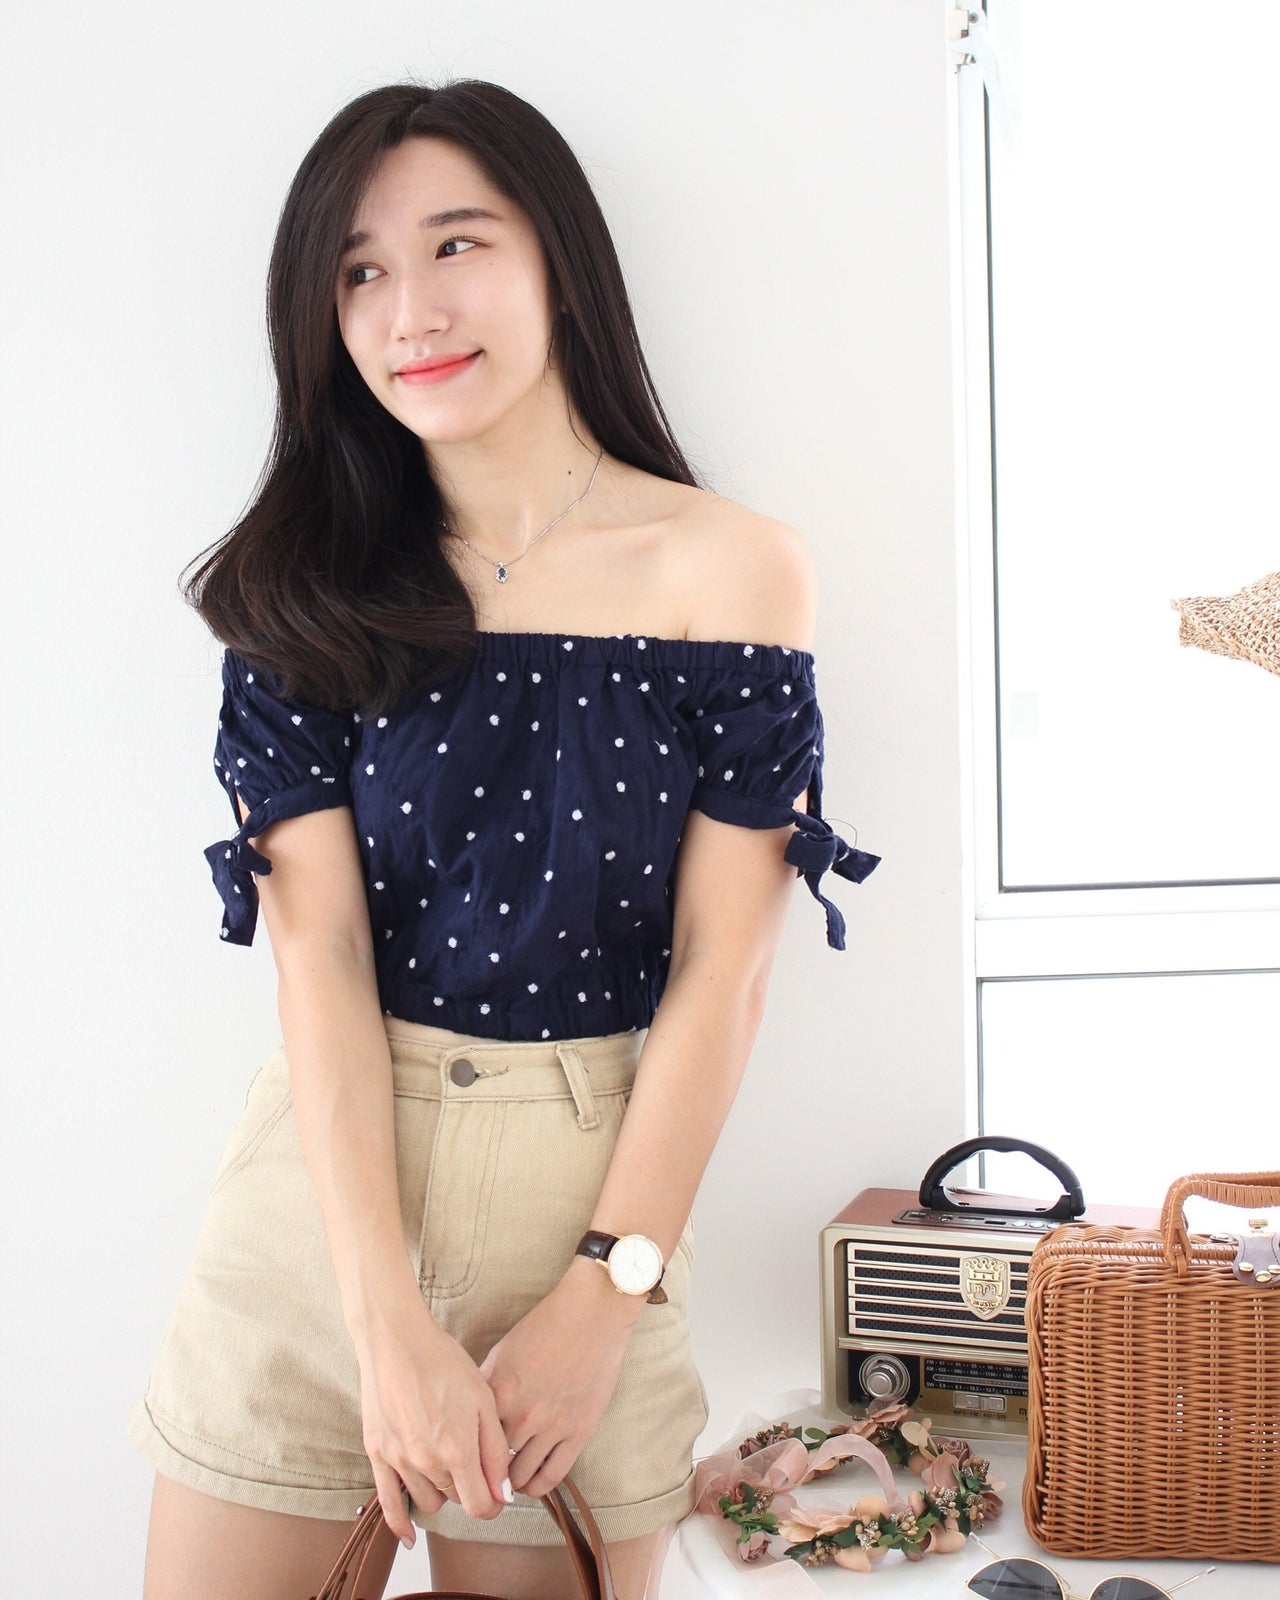 6IXTY 8IGHTY Off Shoulder Top - LovelyMadness Clothing Online Fashion Malaysia